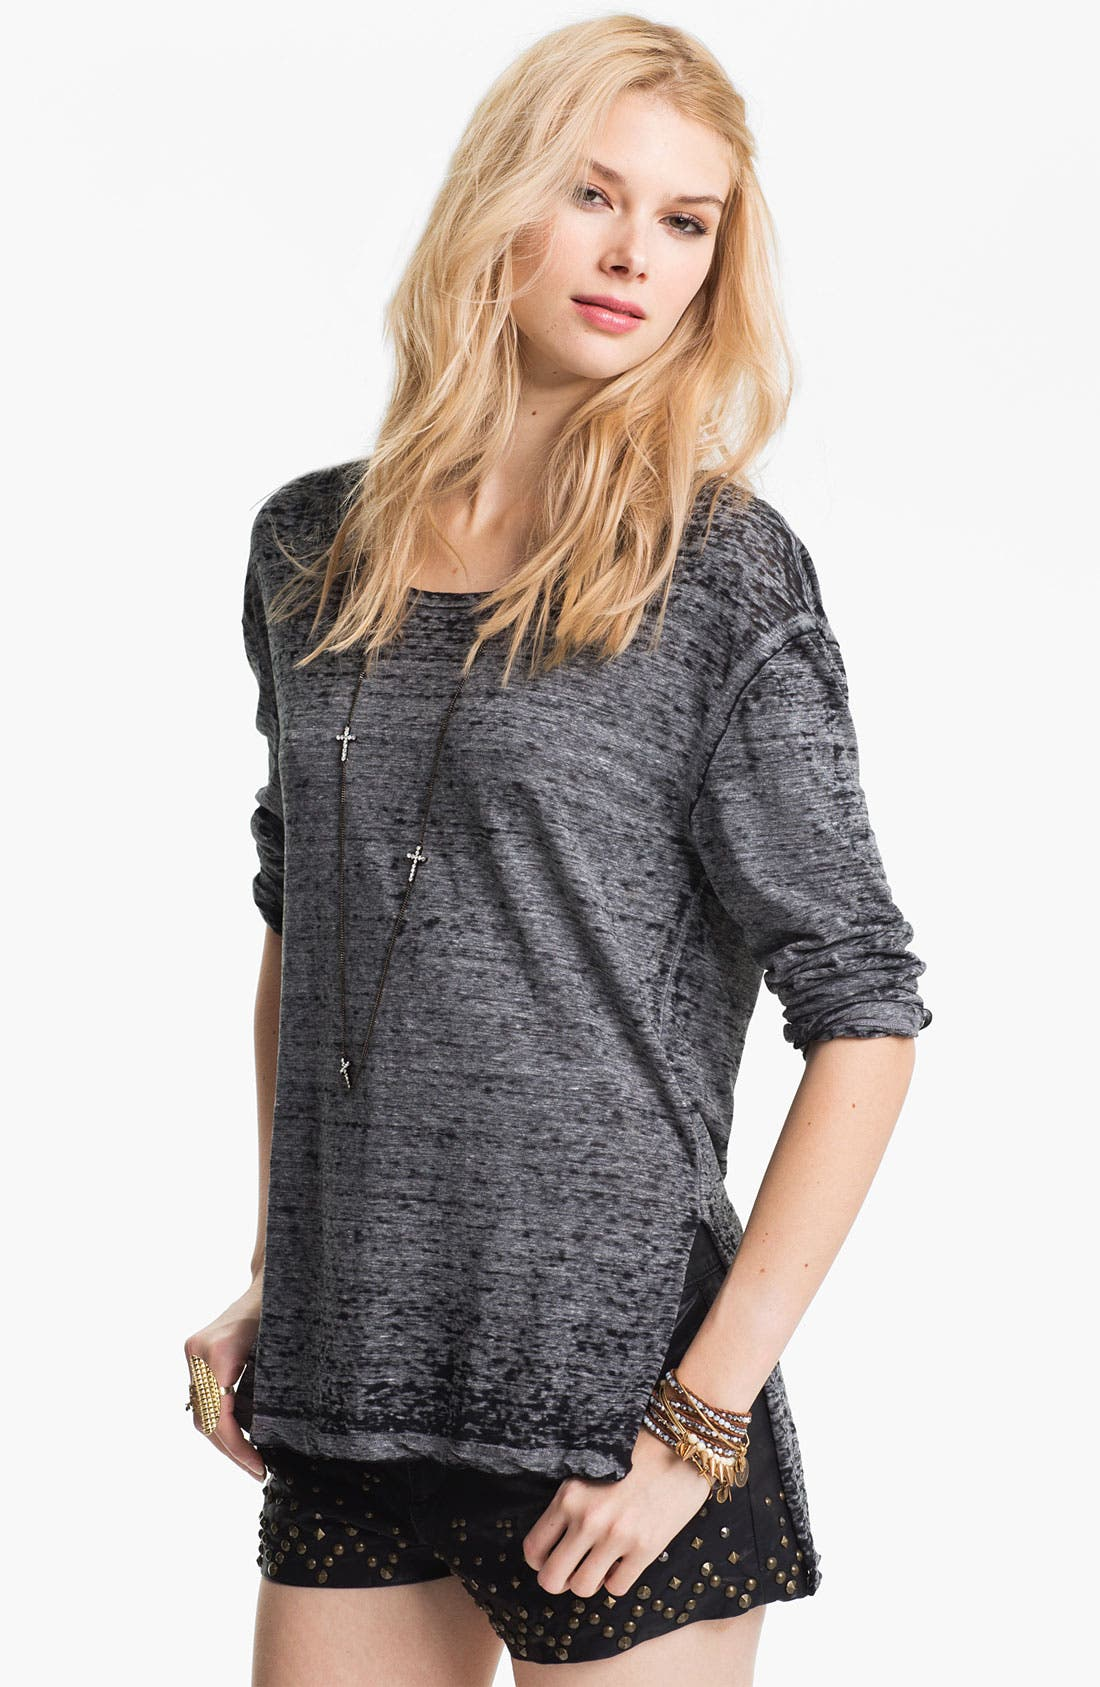 Alternate Image 1 Selected - Free People Oversized Rounded Neckline Burnout Tee